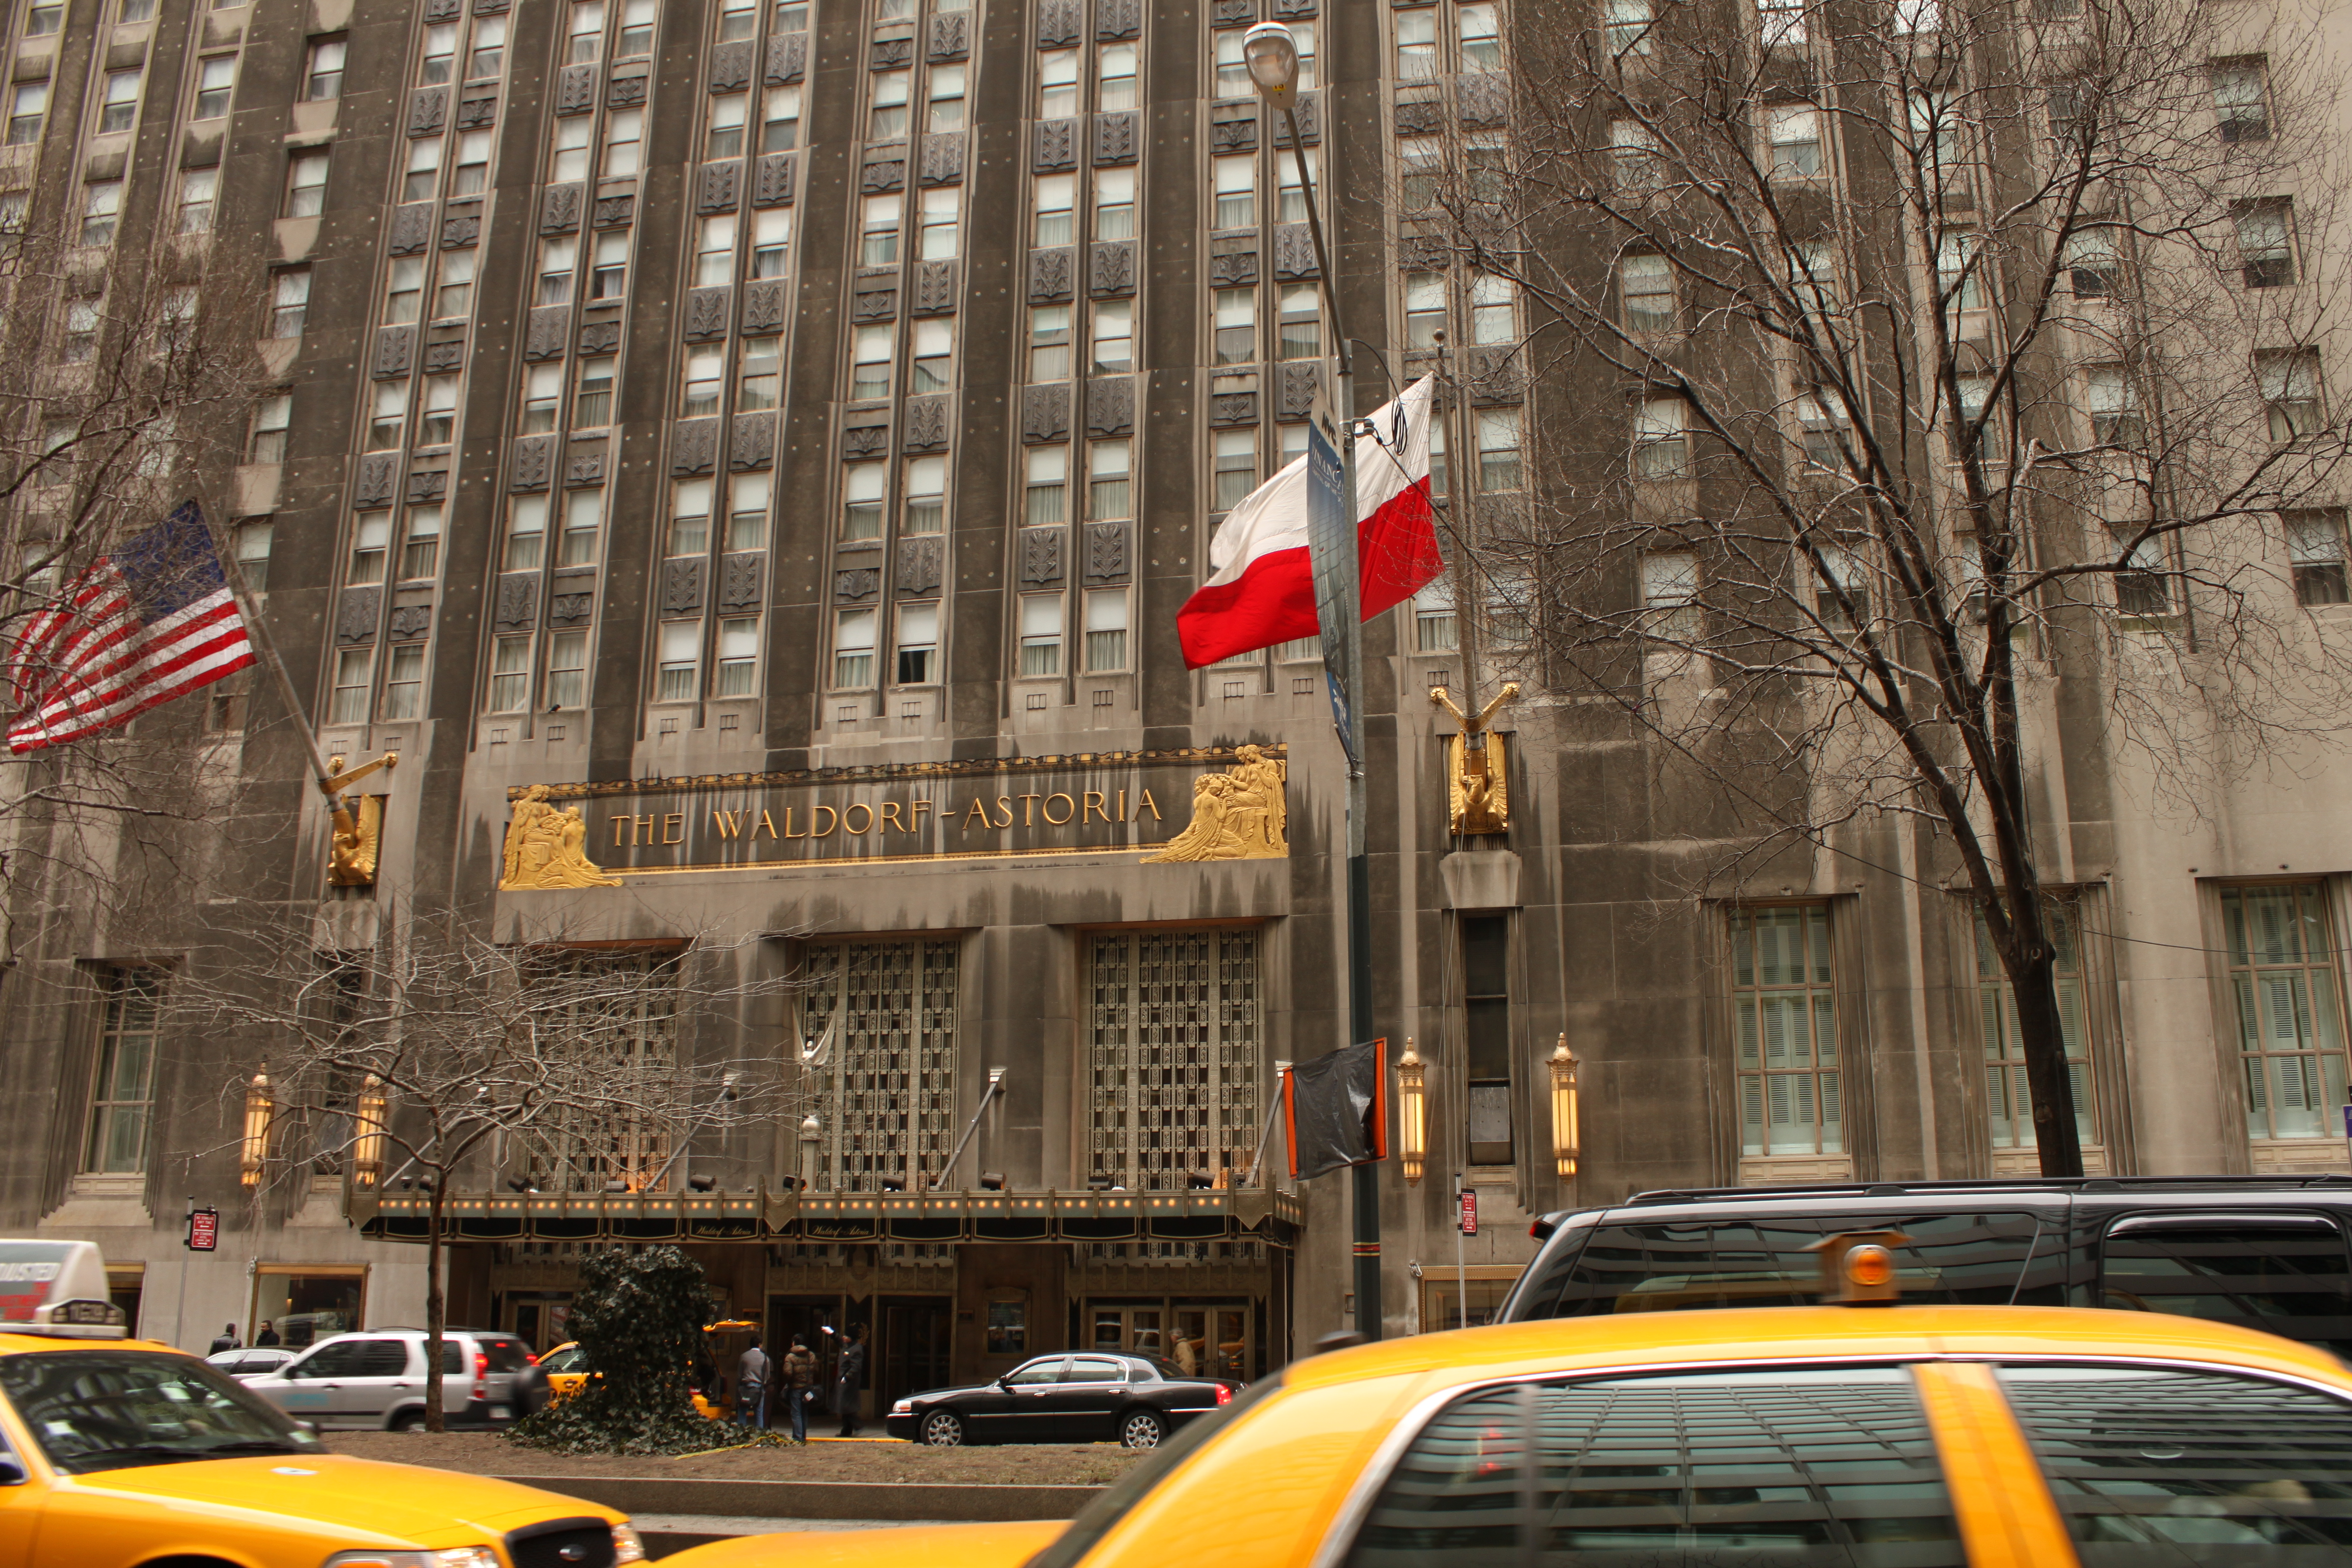 Waldorf astoria new york hotel in new york city for Hotel new astoria